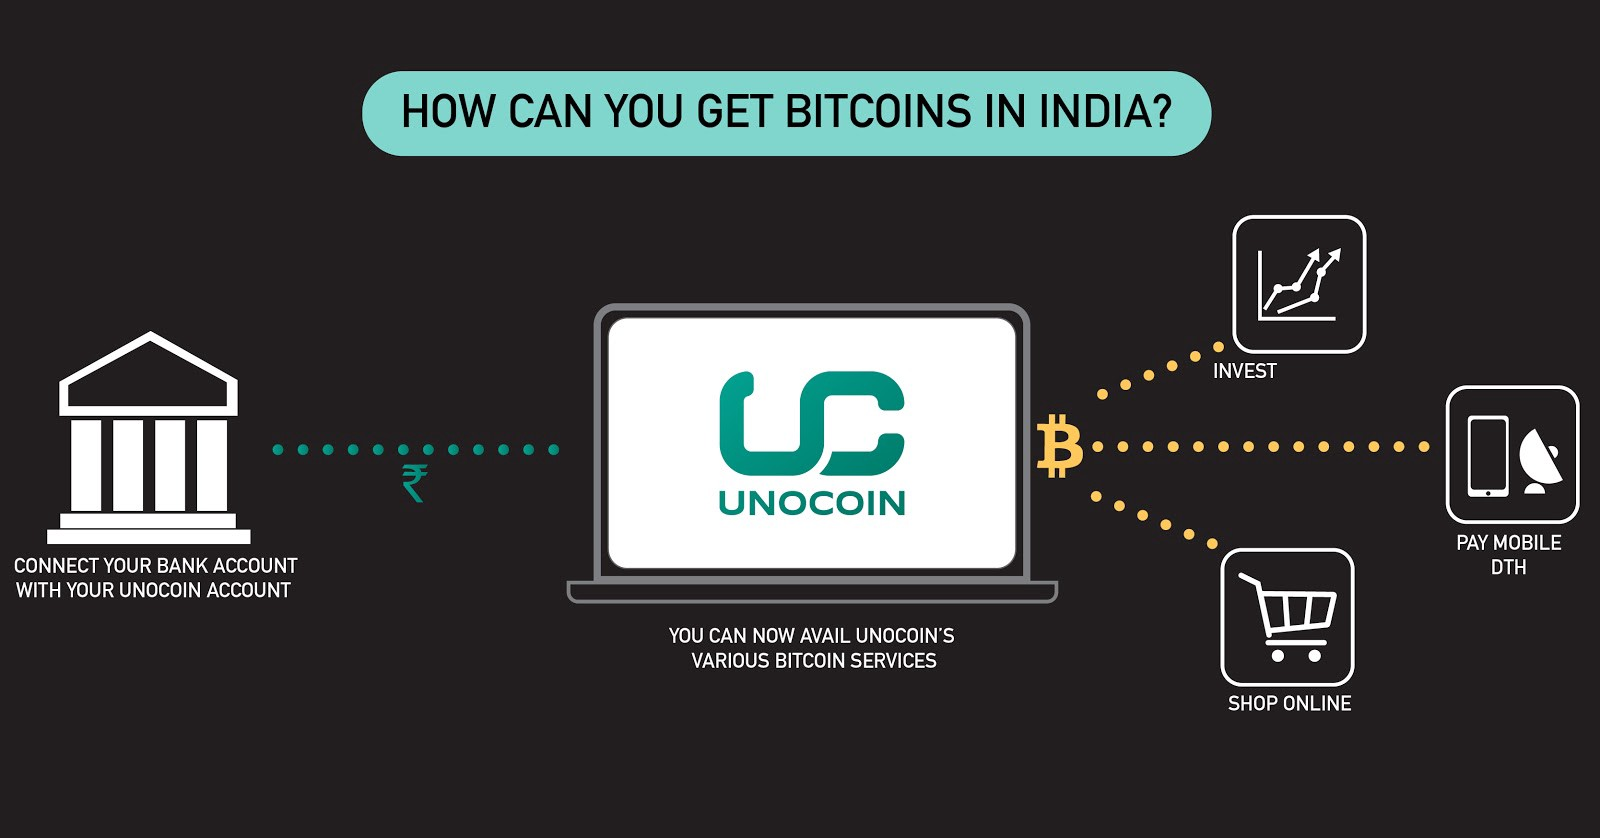 How can you get bitcoins in india unocoin how can you get bitcoins in india ccuart Gallery